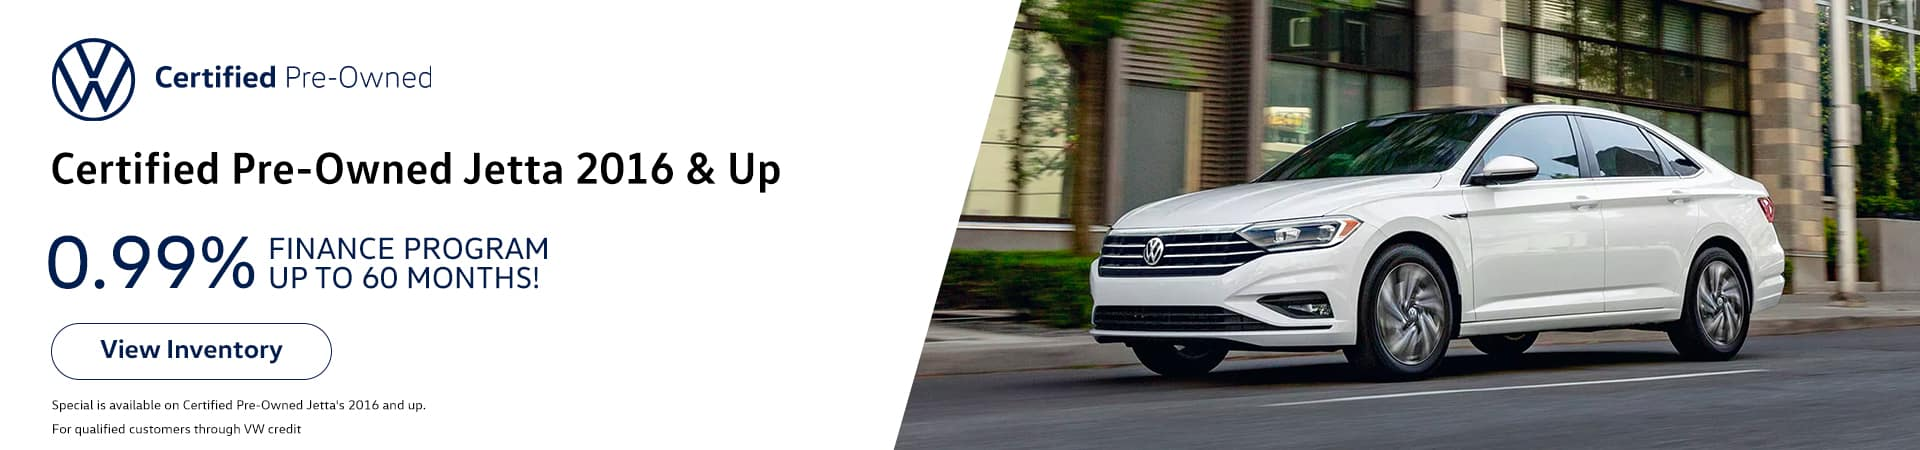 Certified Pre-Owned Jetta 2016 & Up, New 0.99% Finance Program Up to 60 Months!